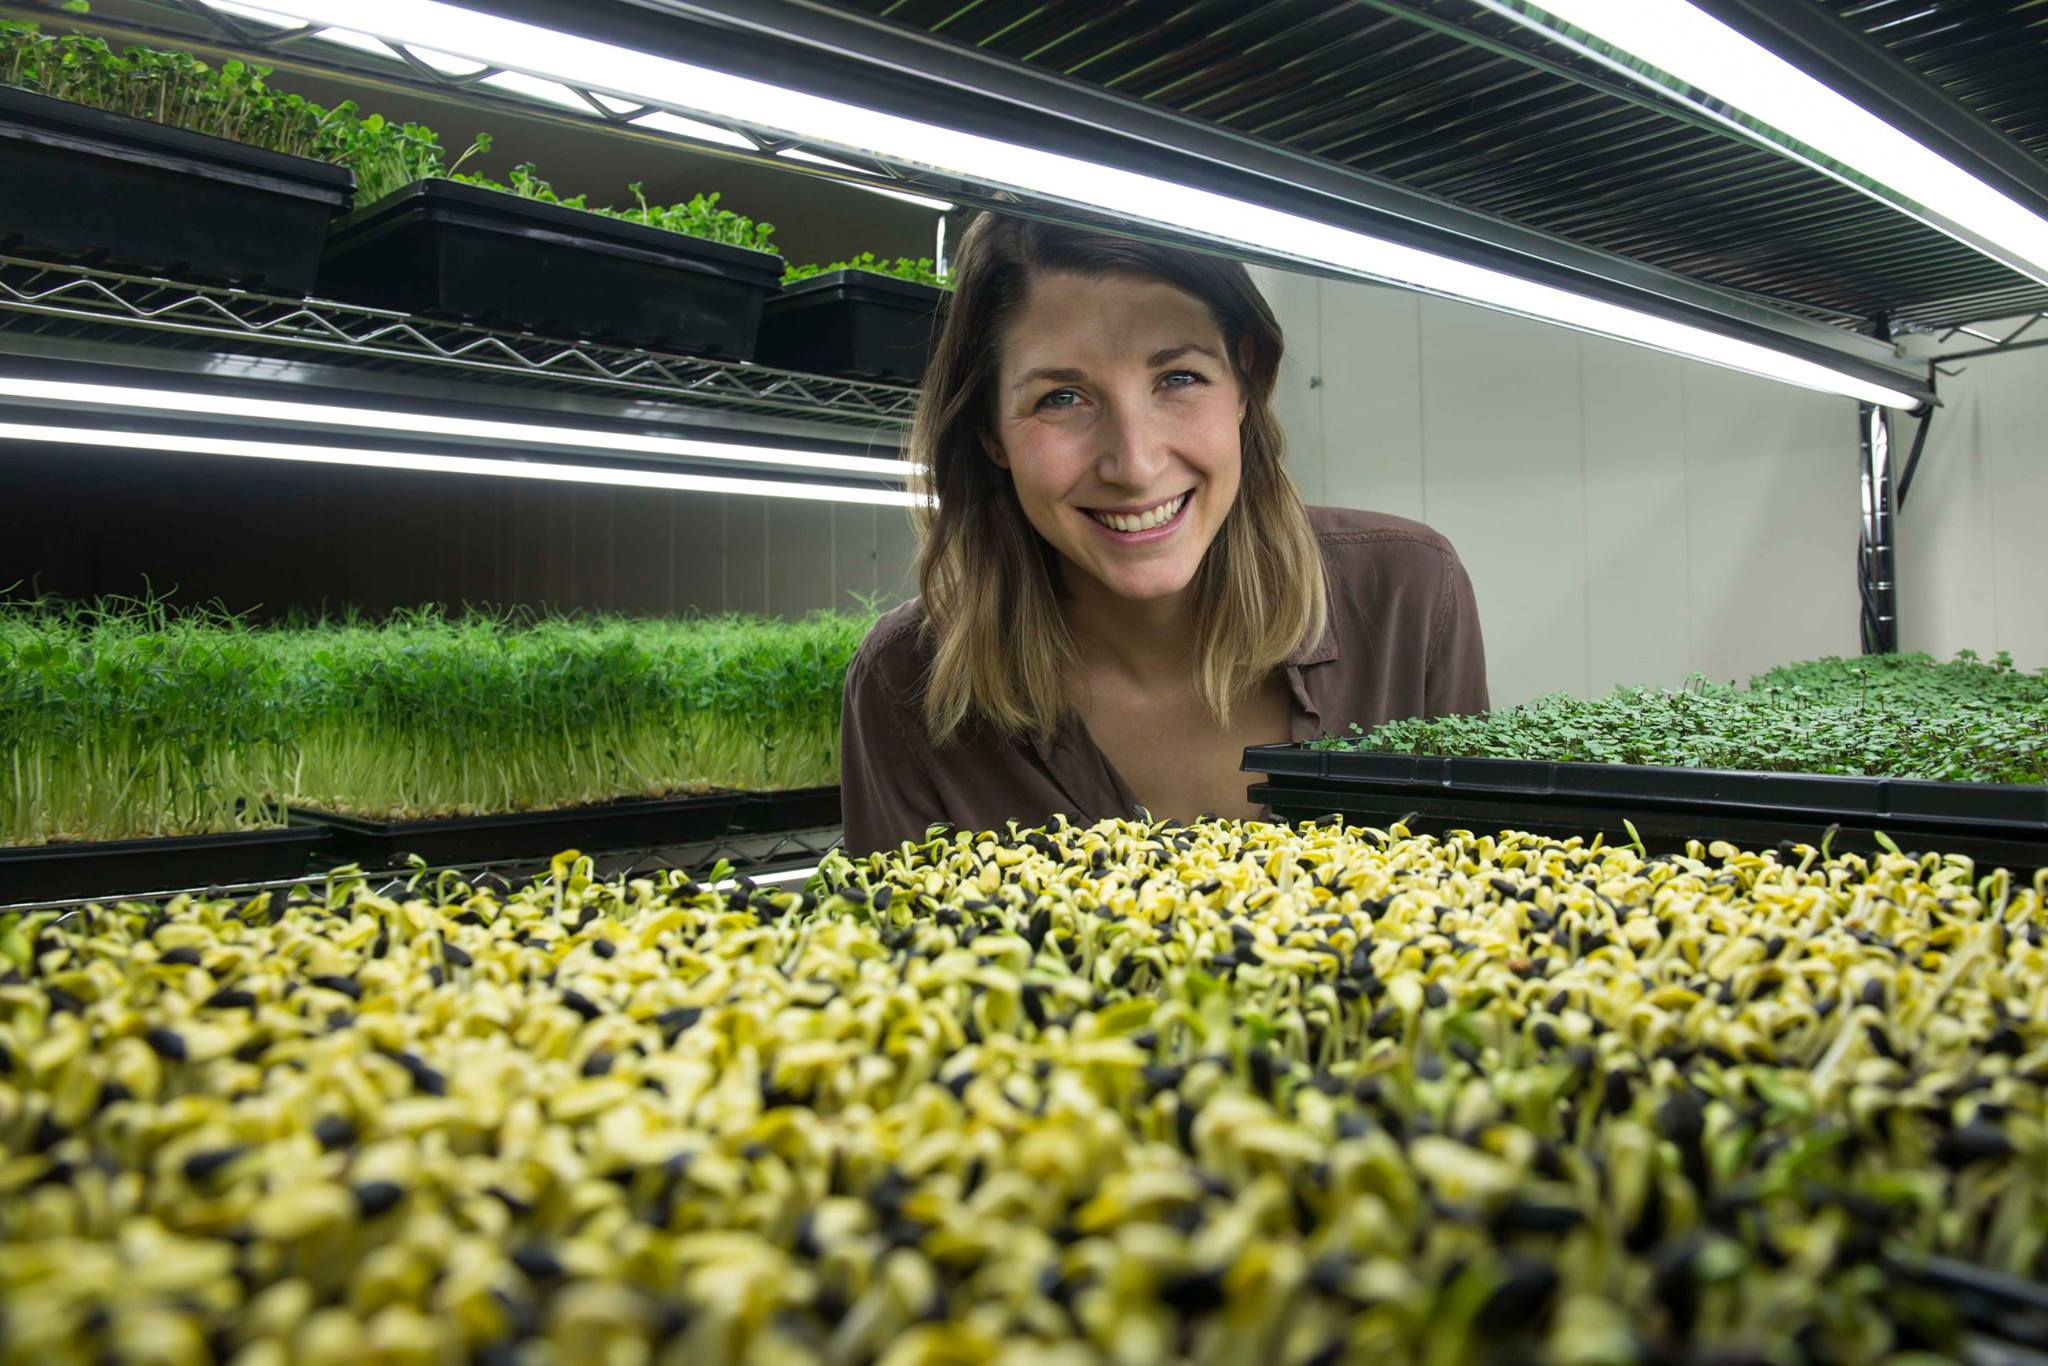 Urban farm collective YYC Growers looking to expand through crowdfunding